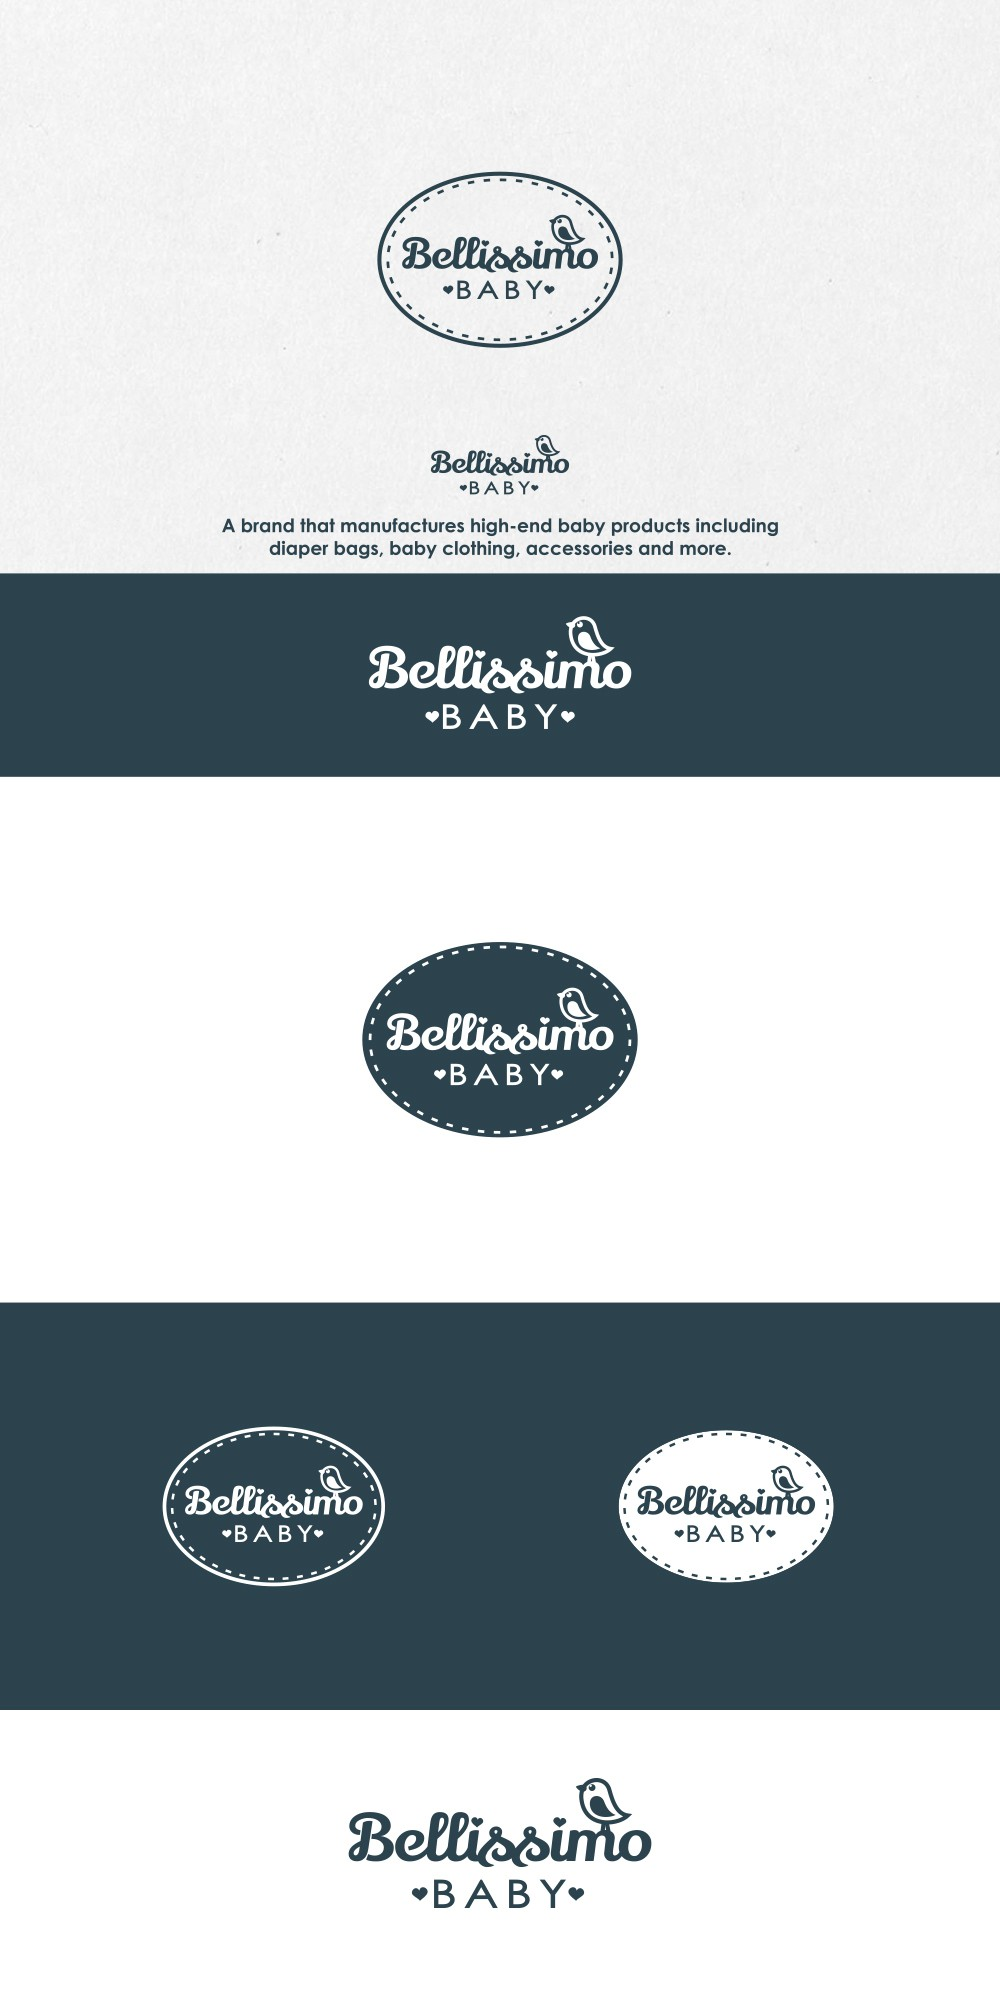 Bellissimo Baby Premiums Products